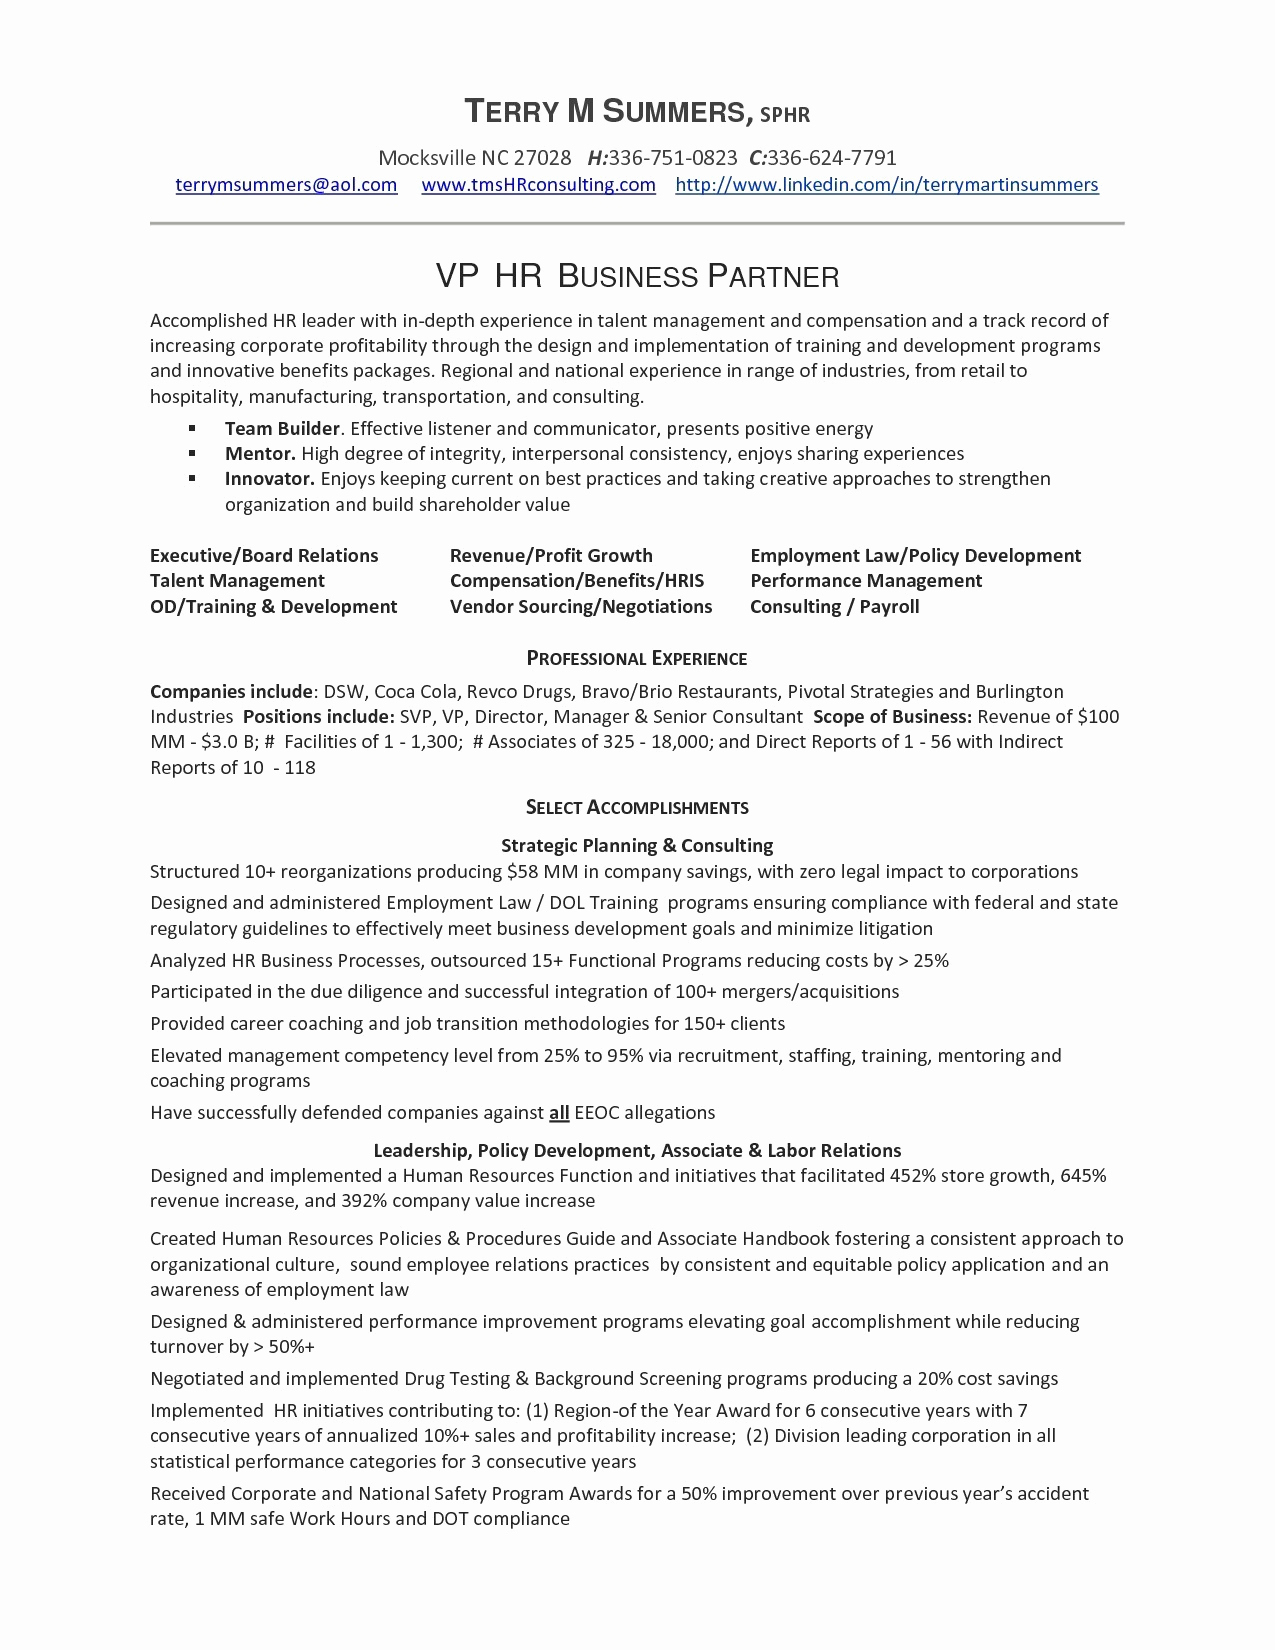 mergers and acquisitions resume template example-Mergers and Acquisitions Resume Elegant Mergers and Inquisitions Resume Template – E Cide 9-d